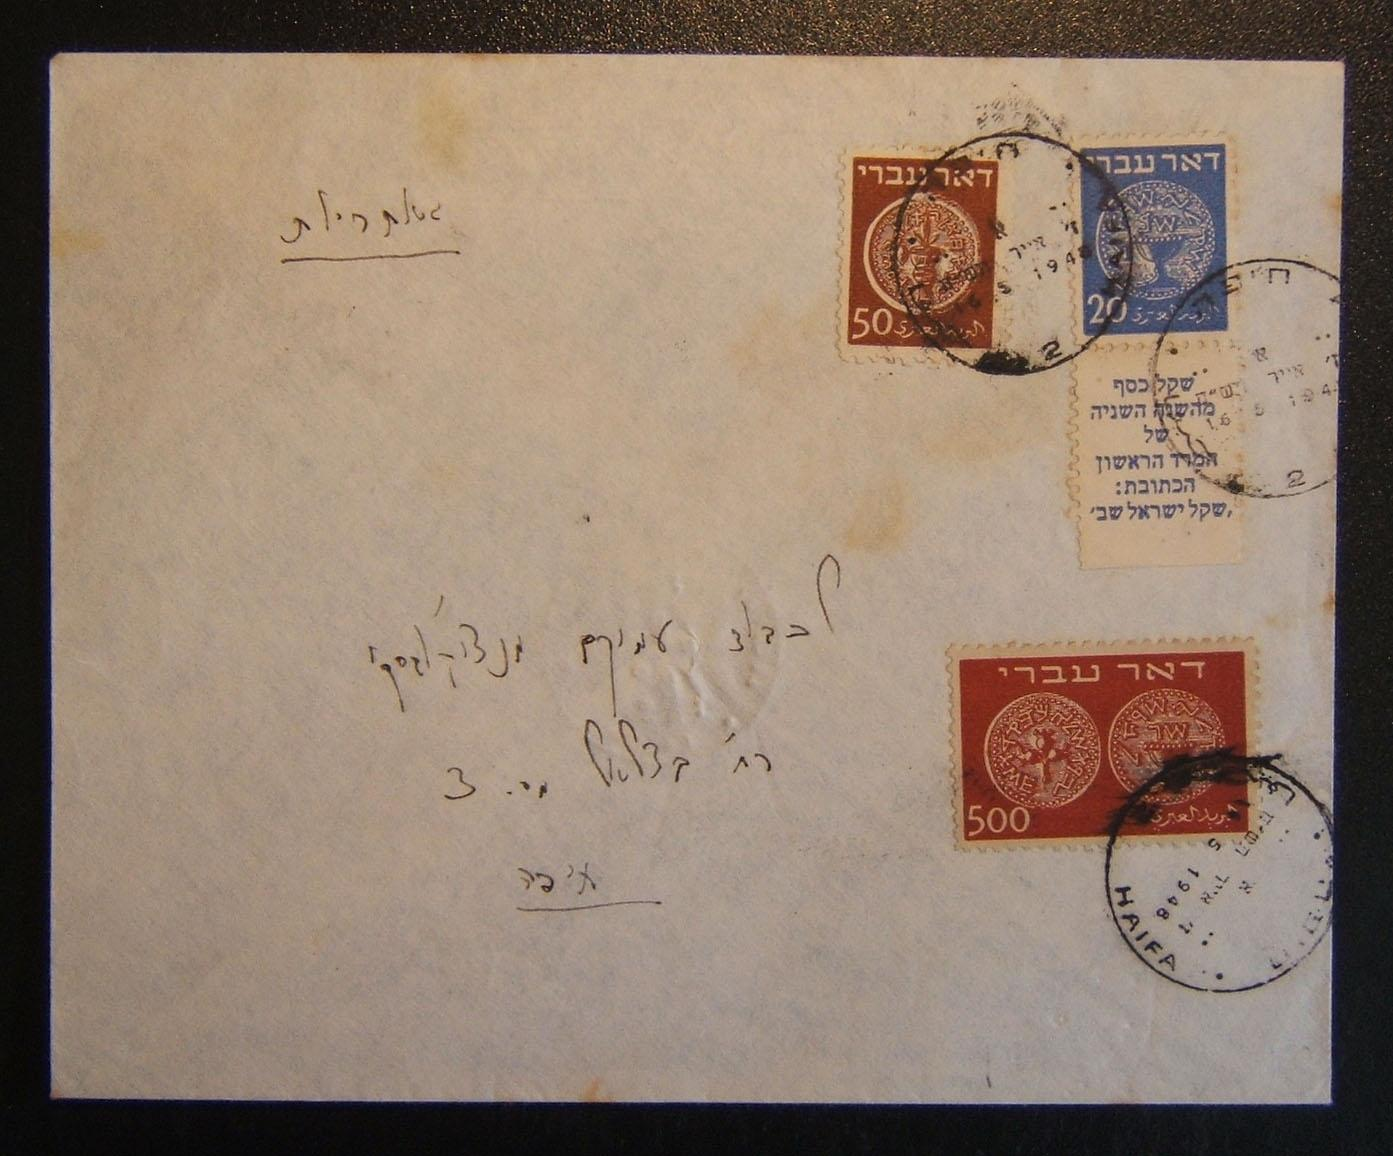 Tabbed & high value Doar Ivri private commercial FDC, 16 May 1948